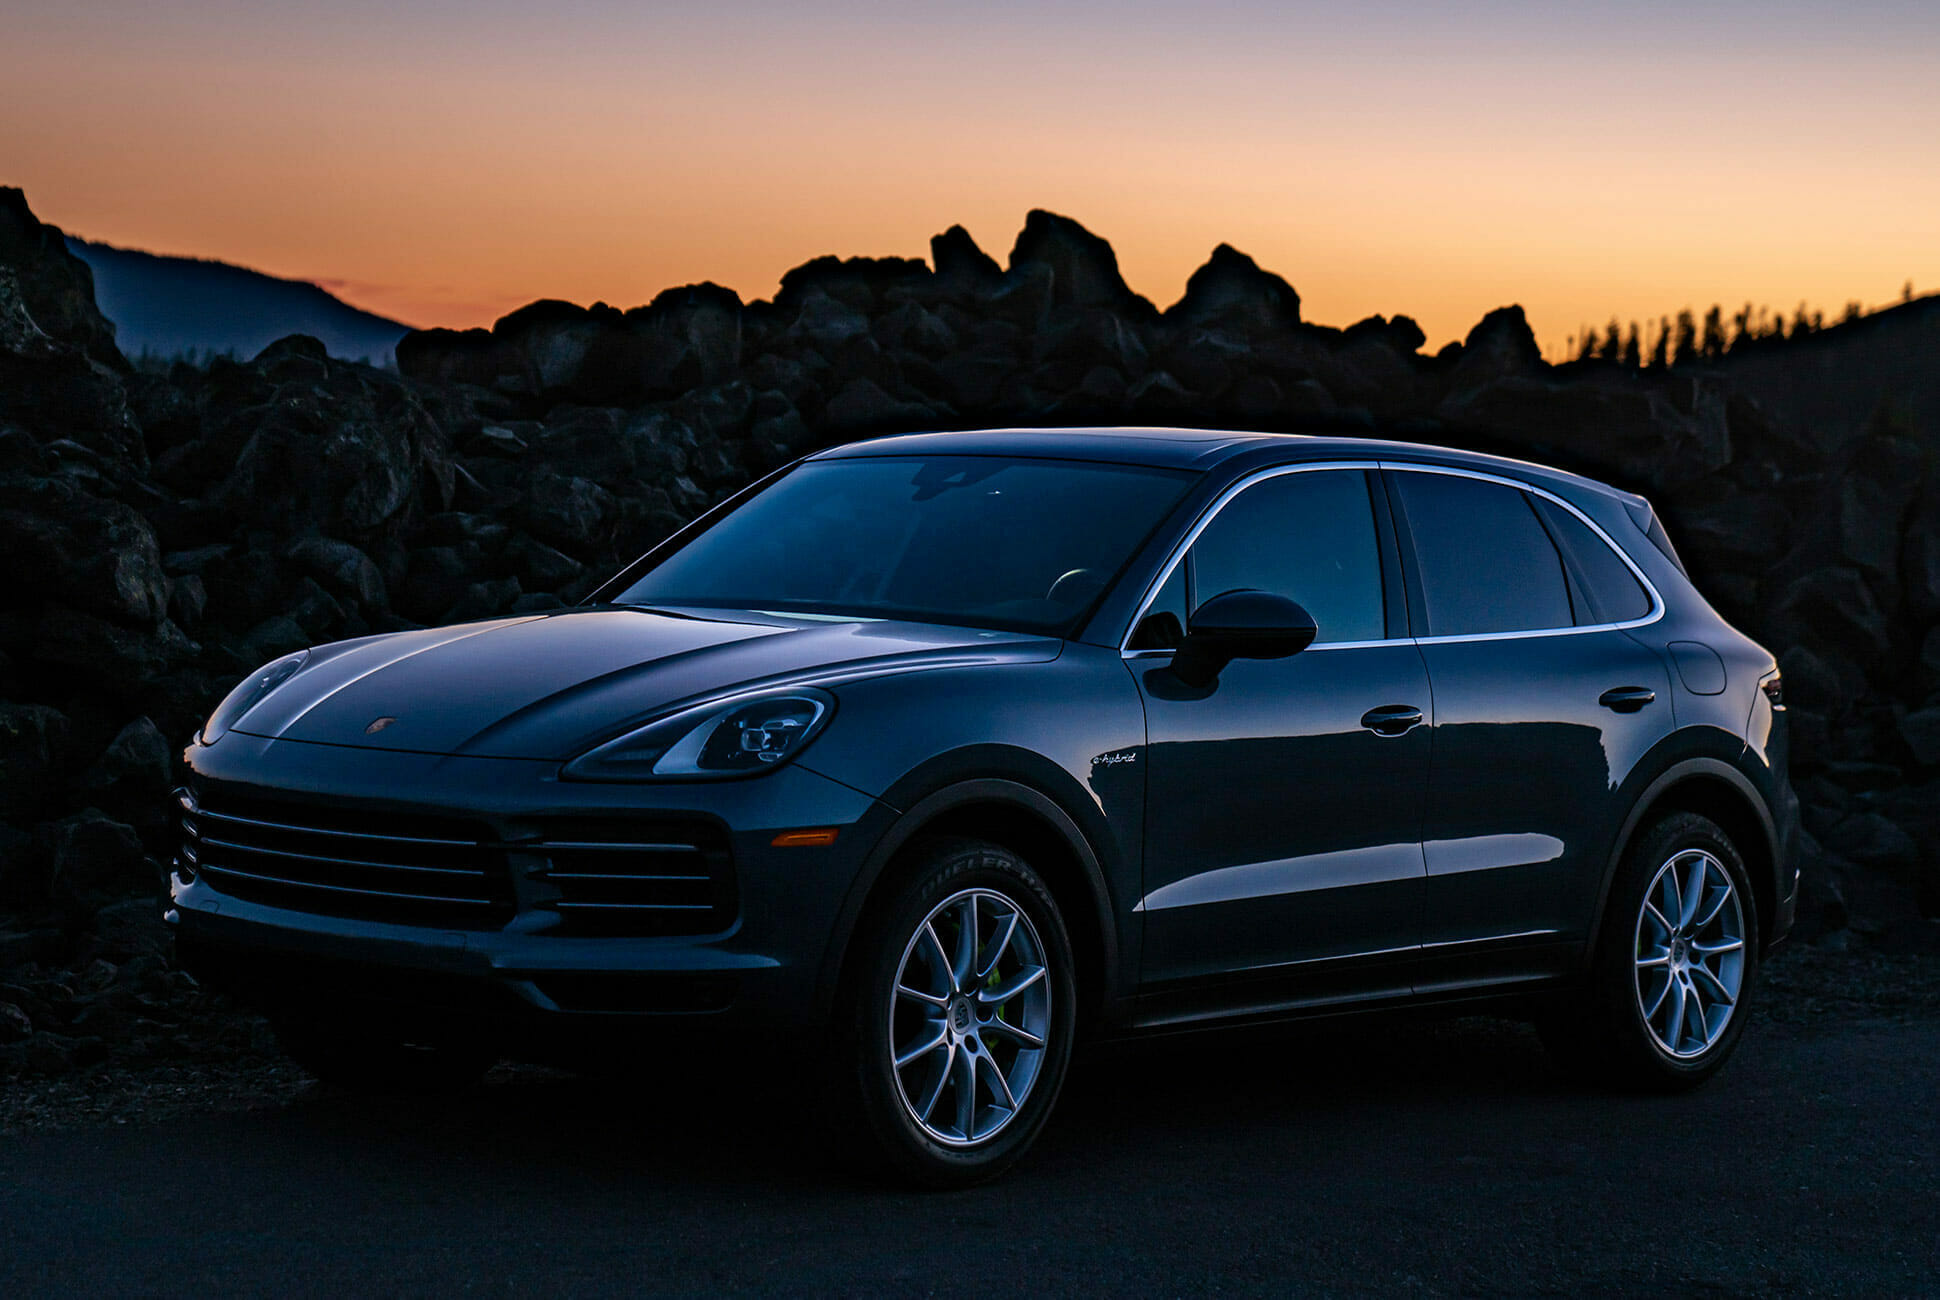 Pair-of-High-Tech-Porsche-Cayenne-Hybrids-gear-patrol-lead-slide-1